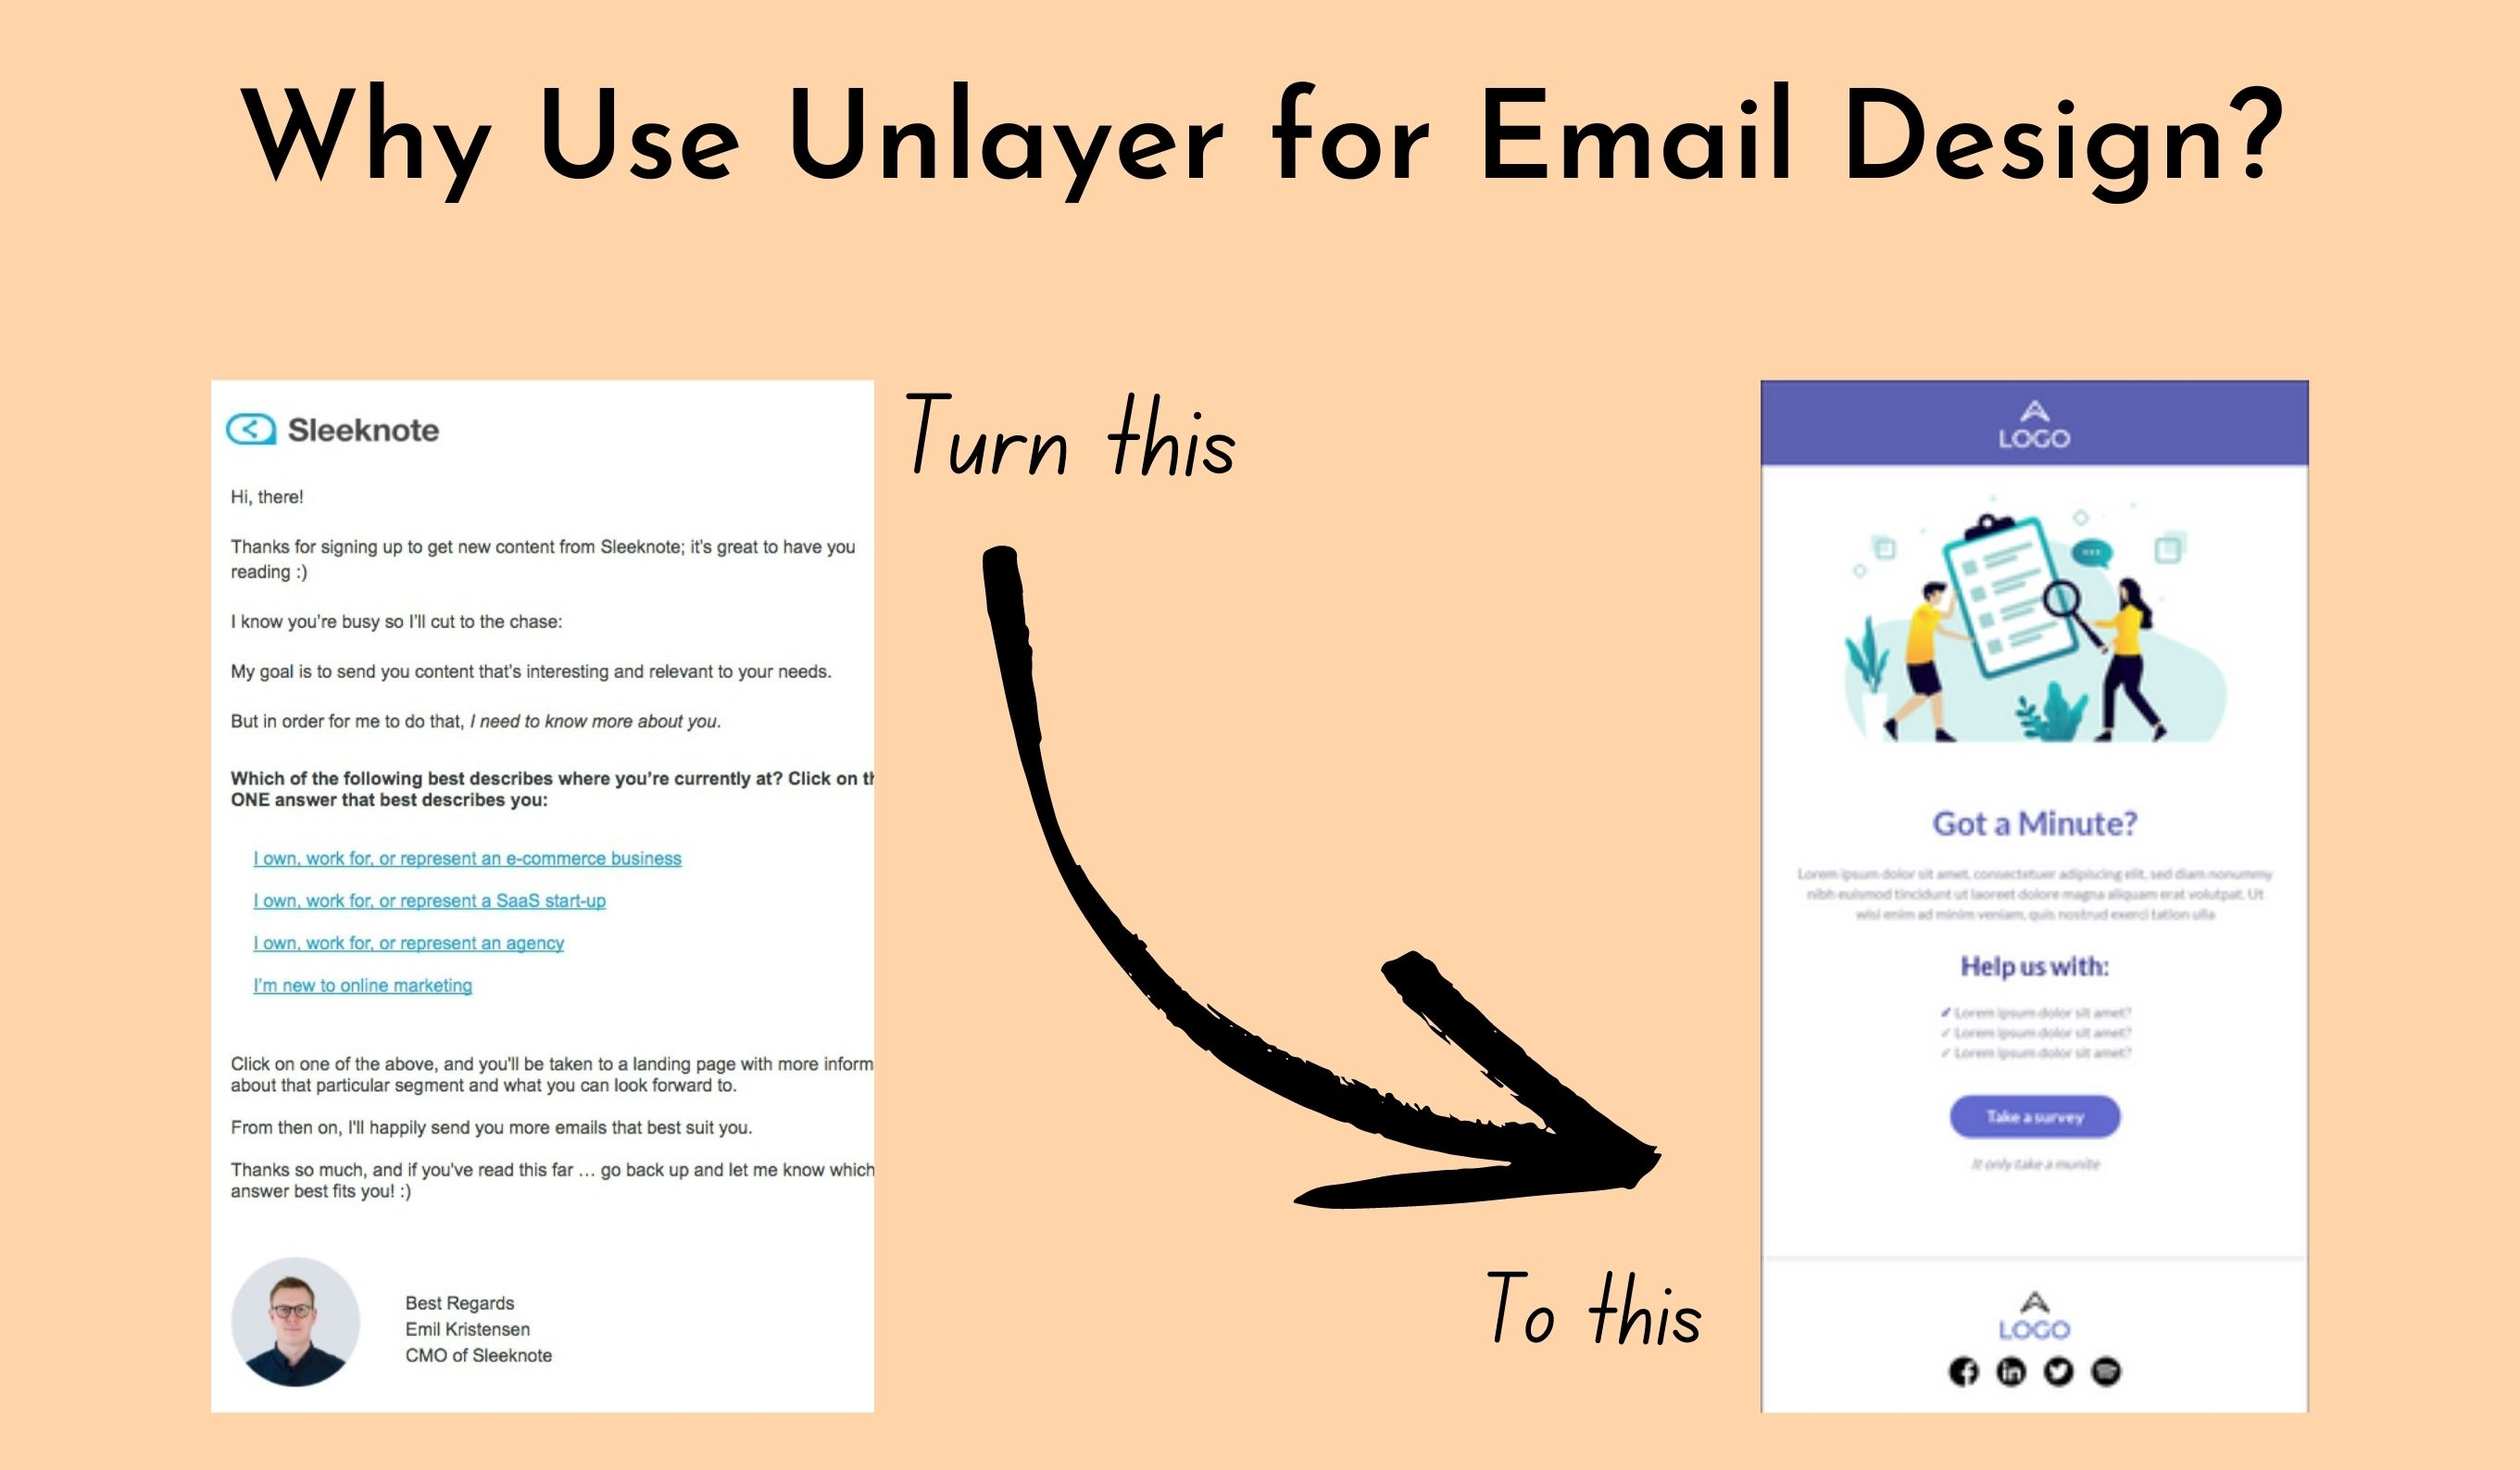 Why Use Unlayer for email design?